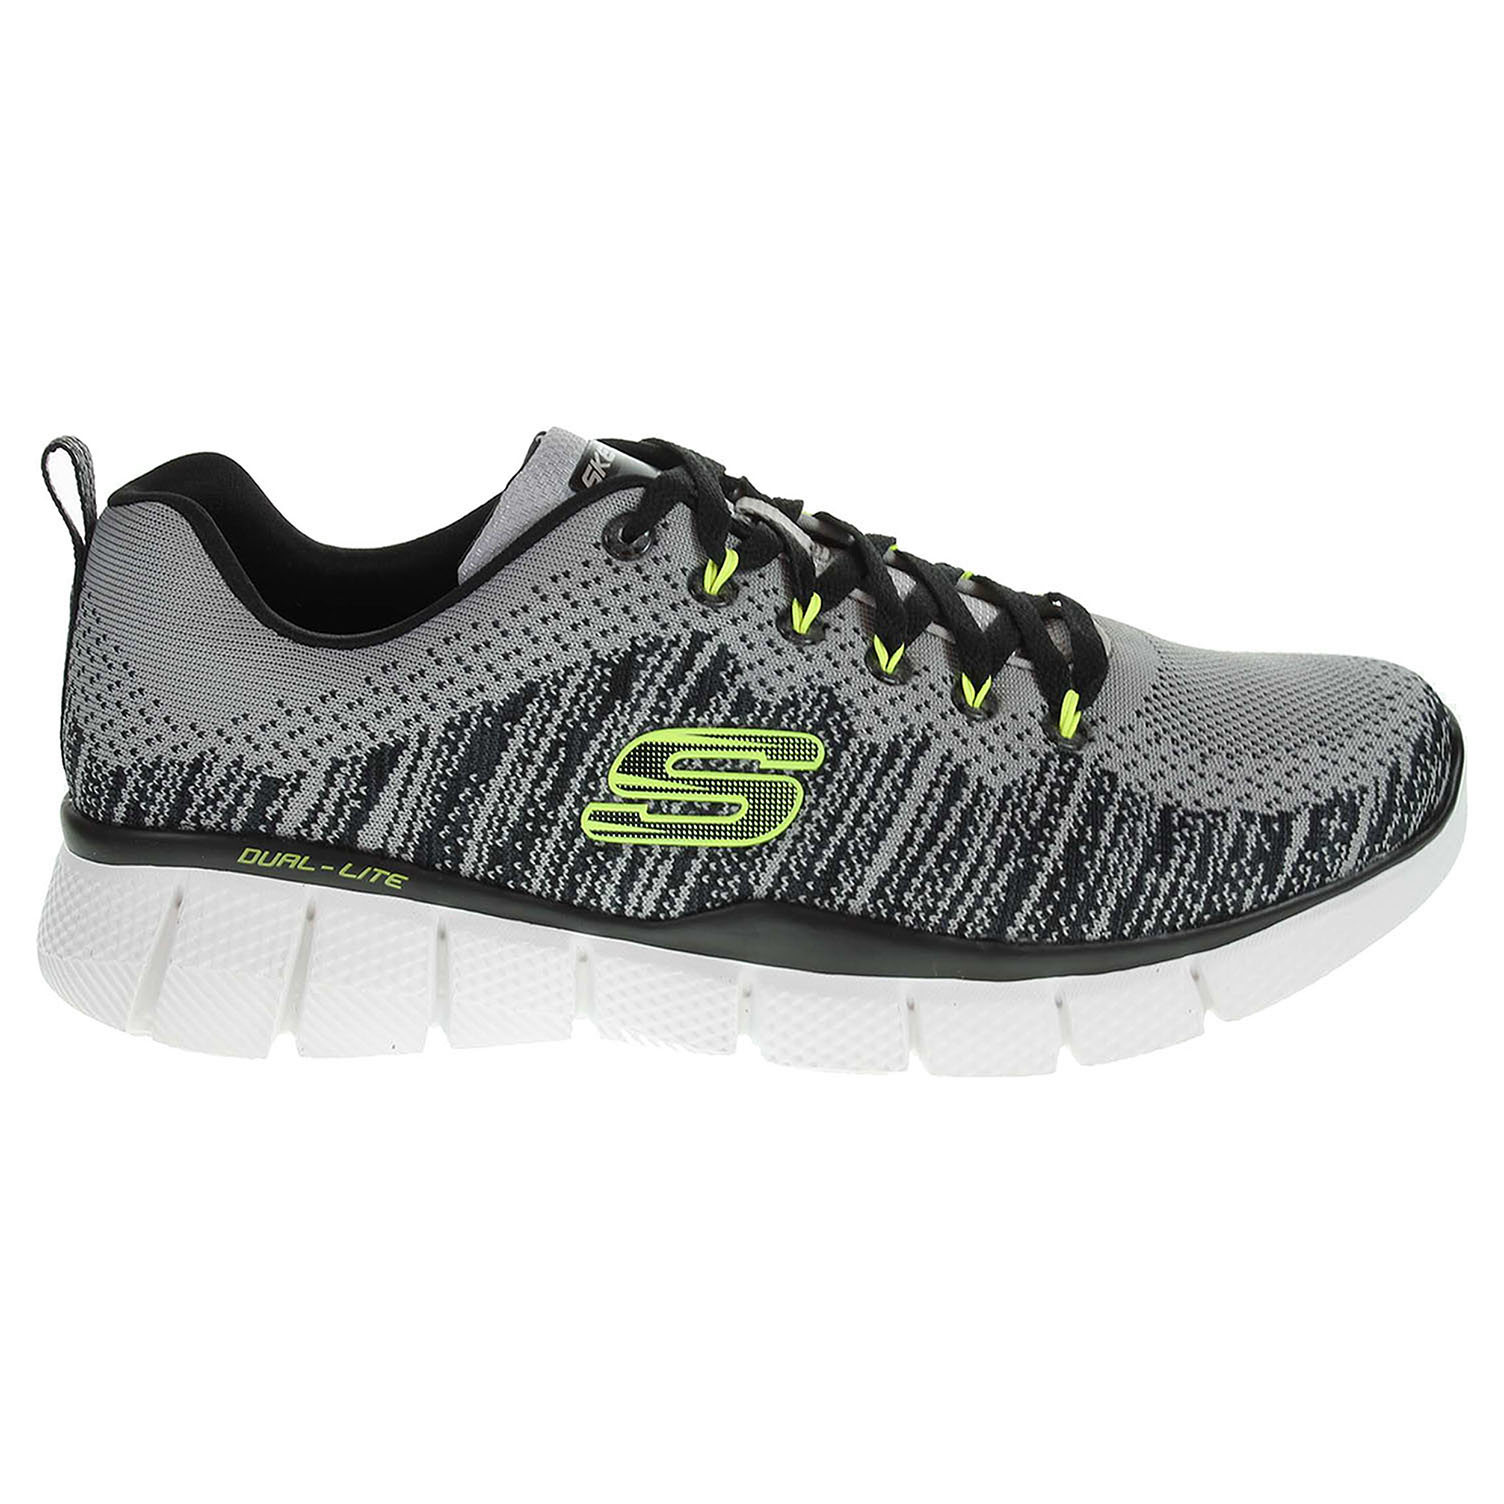 Skechers Perfect Game light gray-black